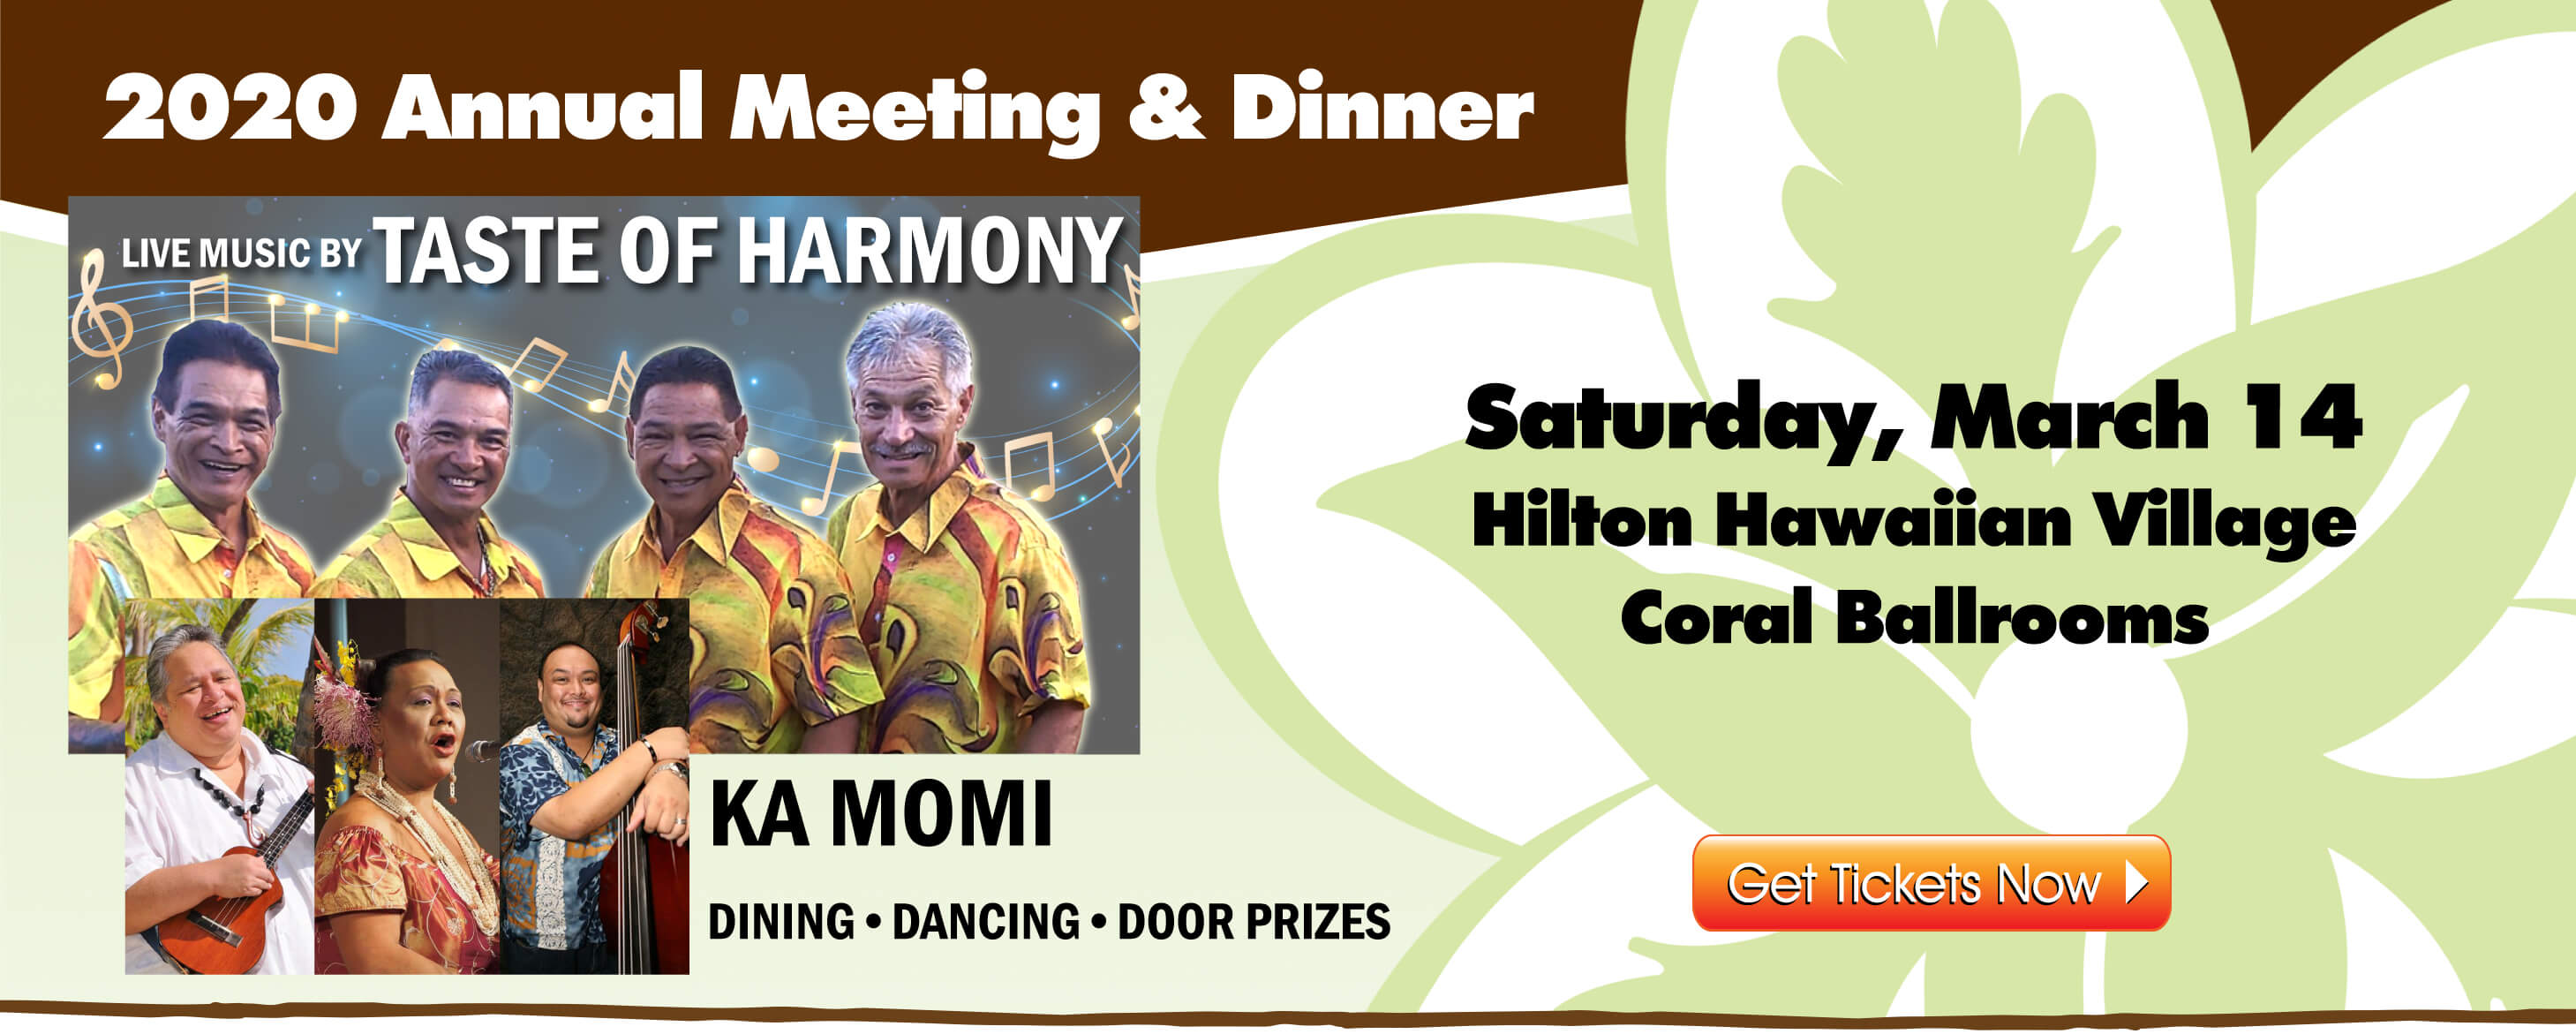 2020 Annual Meeting and Dinner, Saturday March 14 at the Hilton Hawaiian Village Coral Ballrooms.  Get your tickets today!